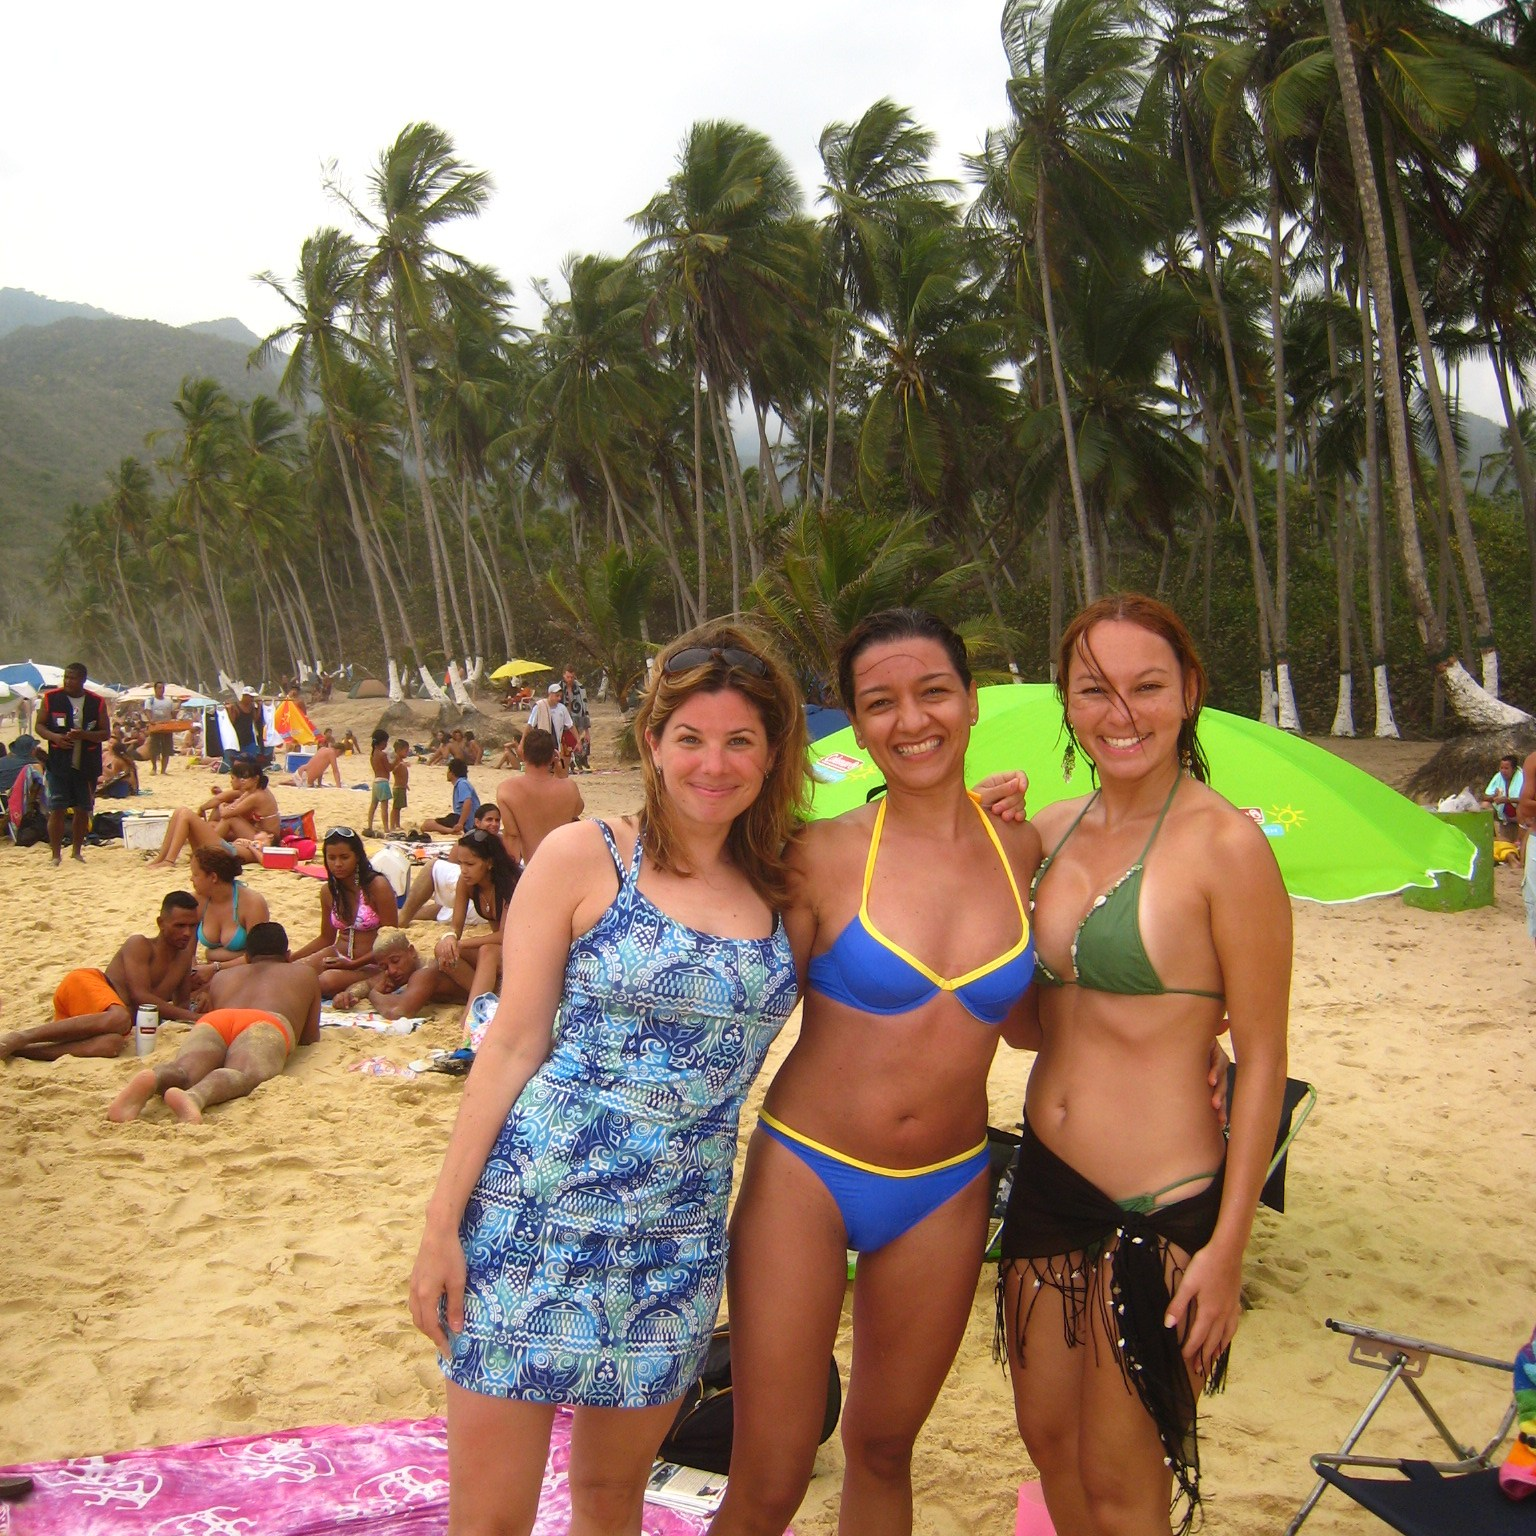 Rebecca Soffer and friends on the beach in Venezuela